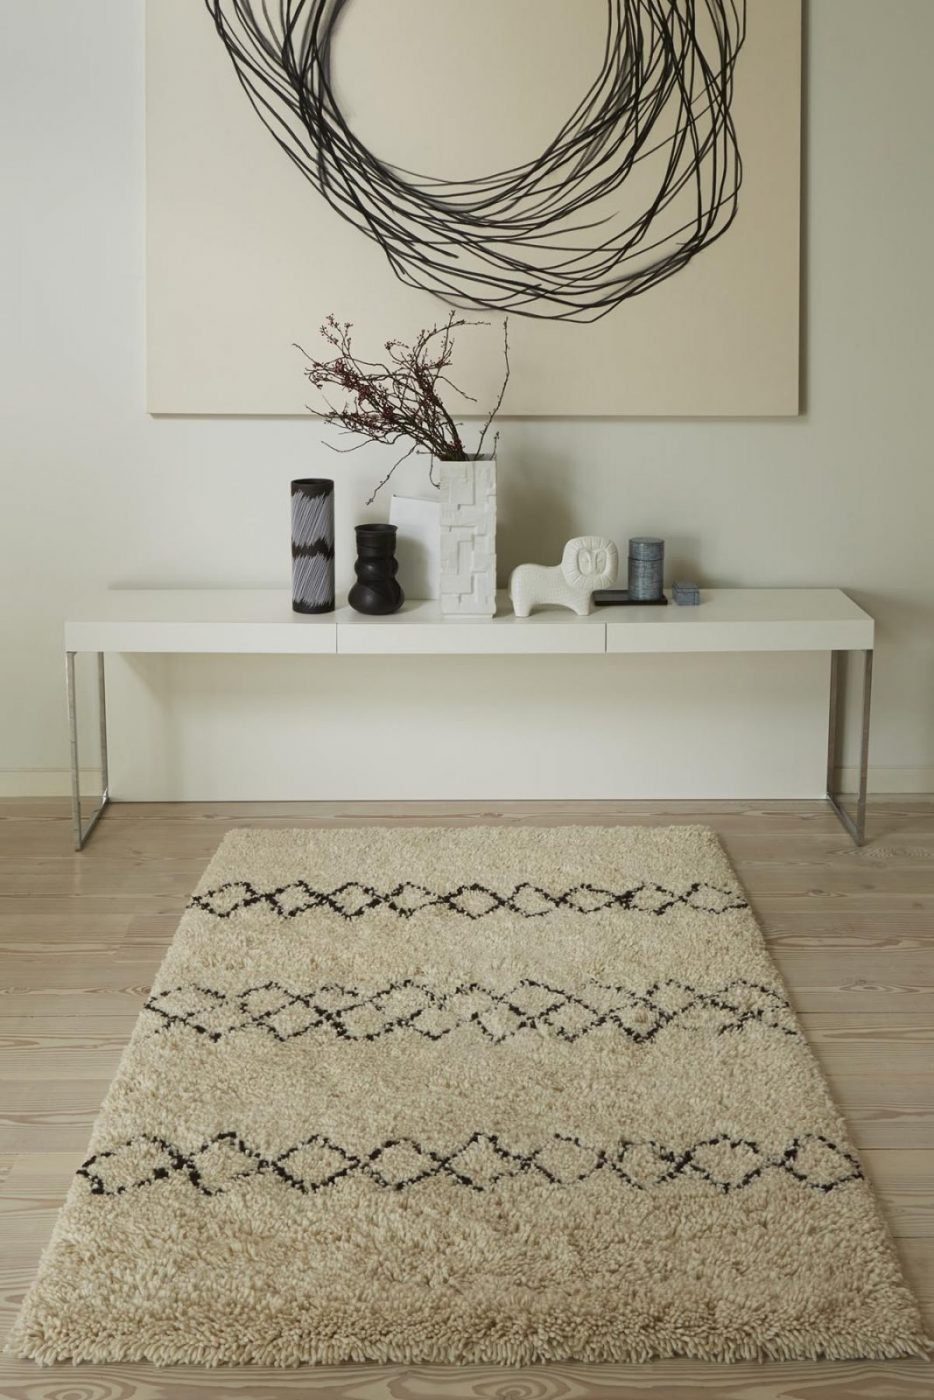 Benni BEN02 | Plantation Rug Company | Best at Flooring